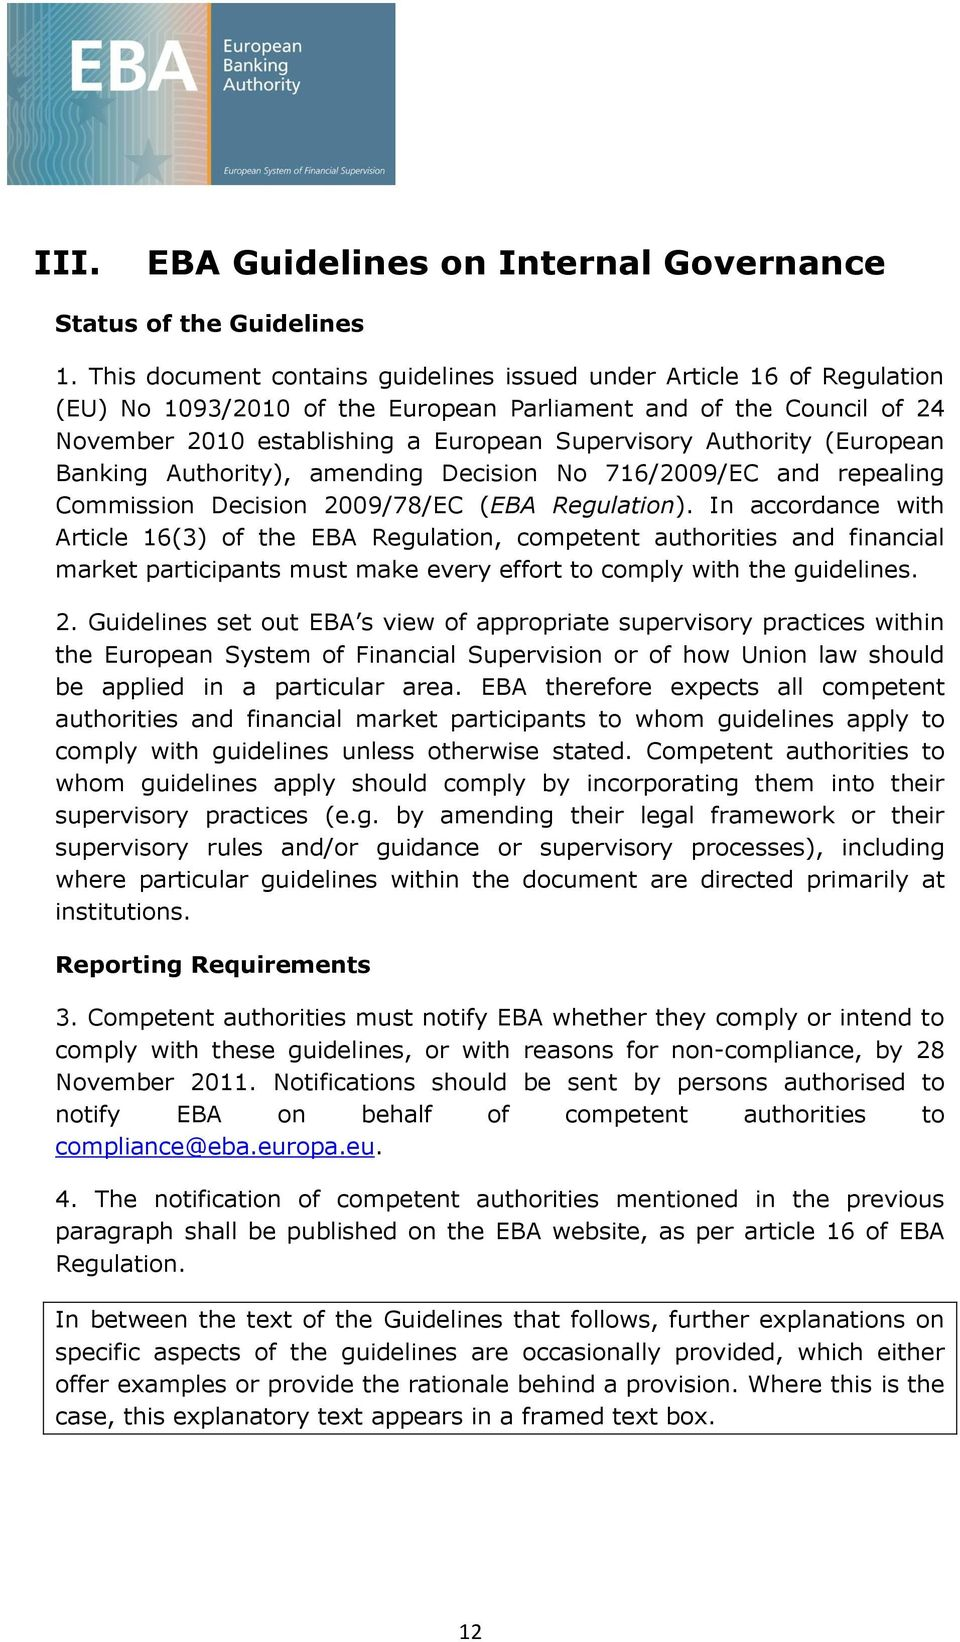 (European Banking Authority), amending Decision 716/2009/EC and repealing Commission Decision 2009/78/EC (EBA Regulation).